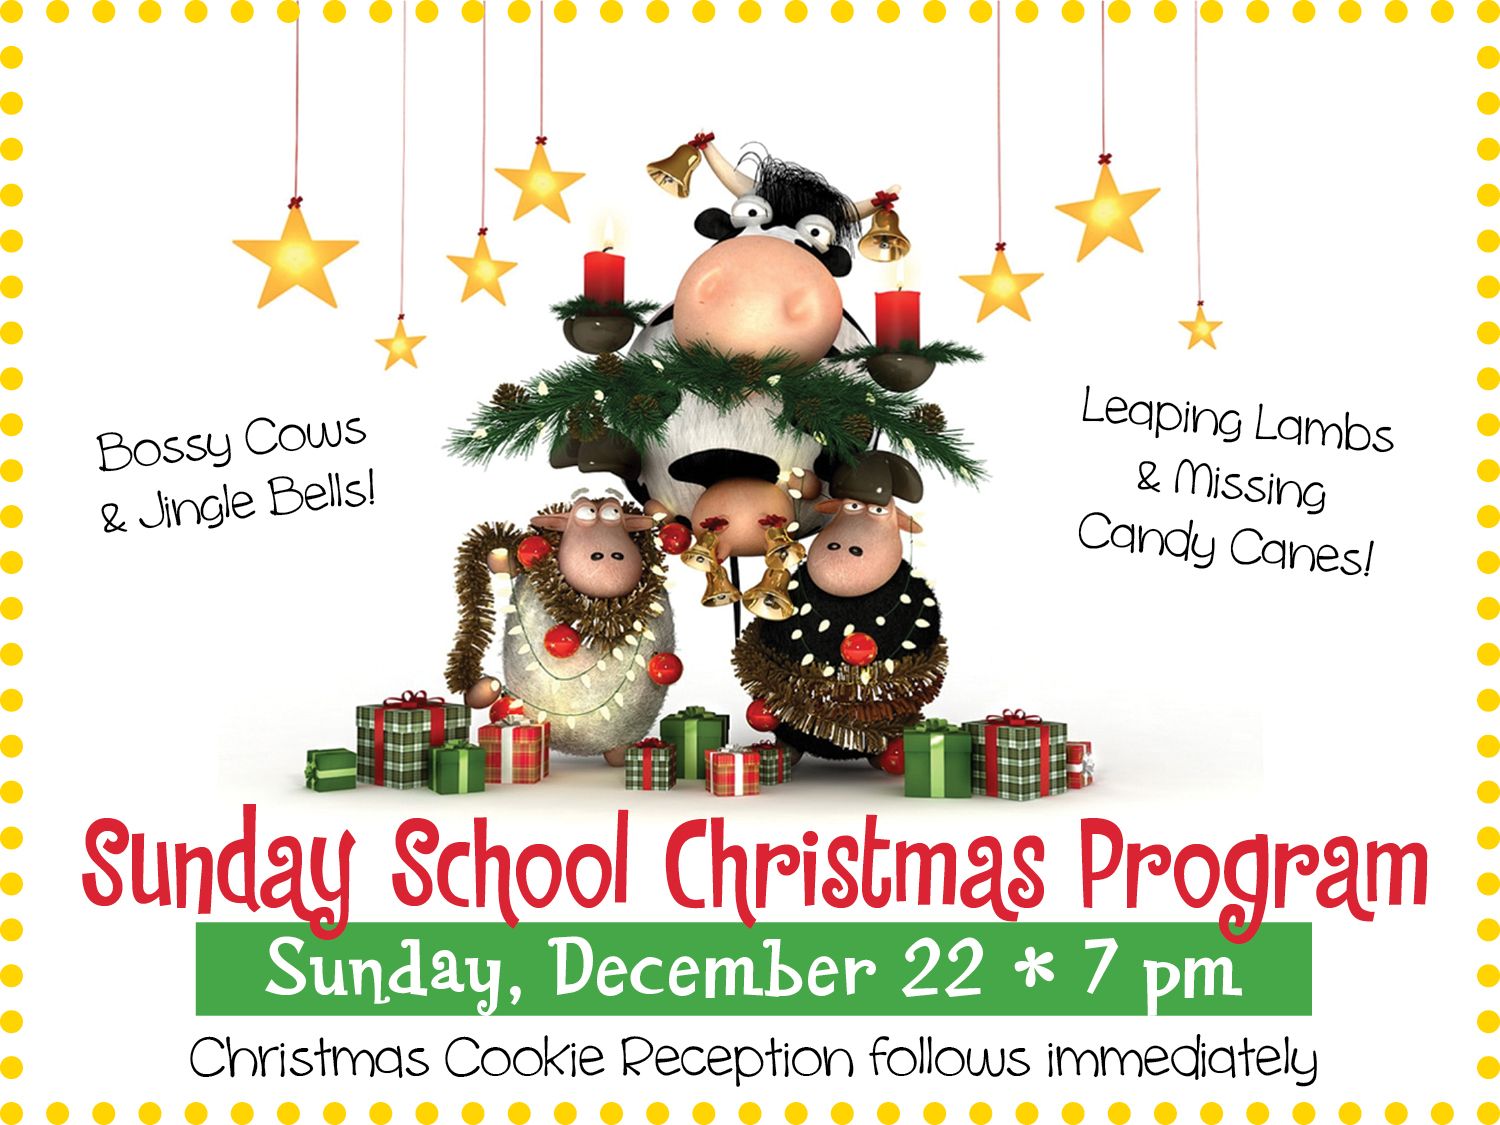 Sunday School Christmas Program @ The MACC | Pittston | Pennsylvania | United States